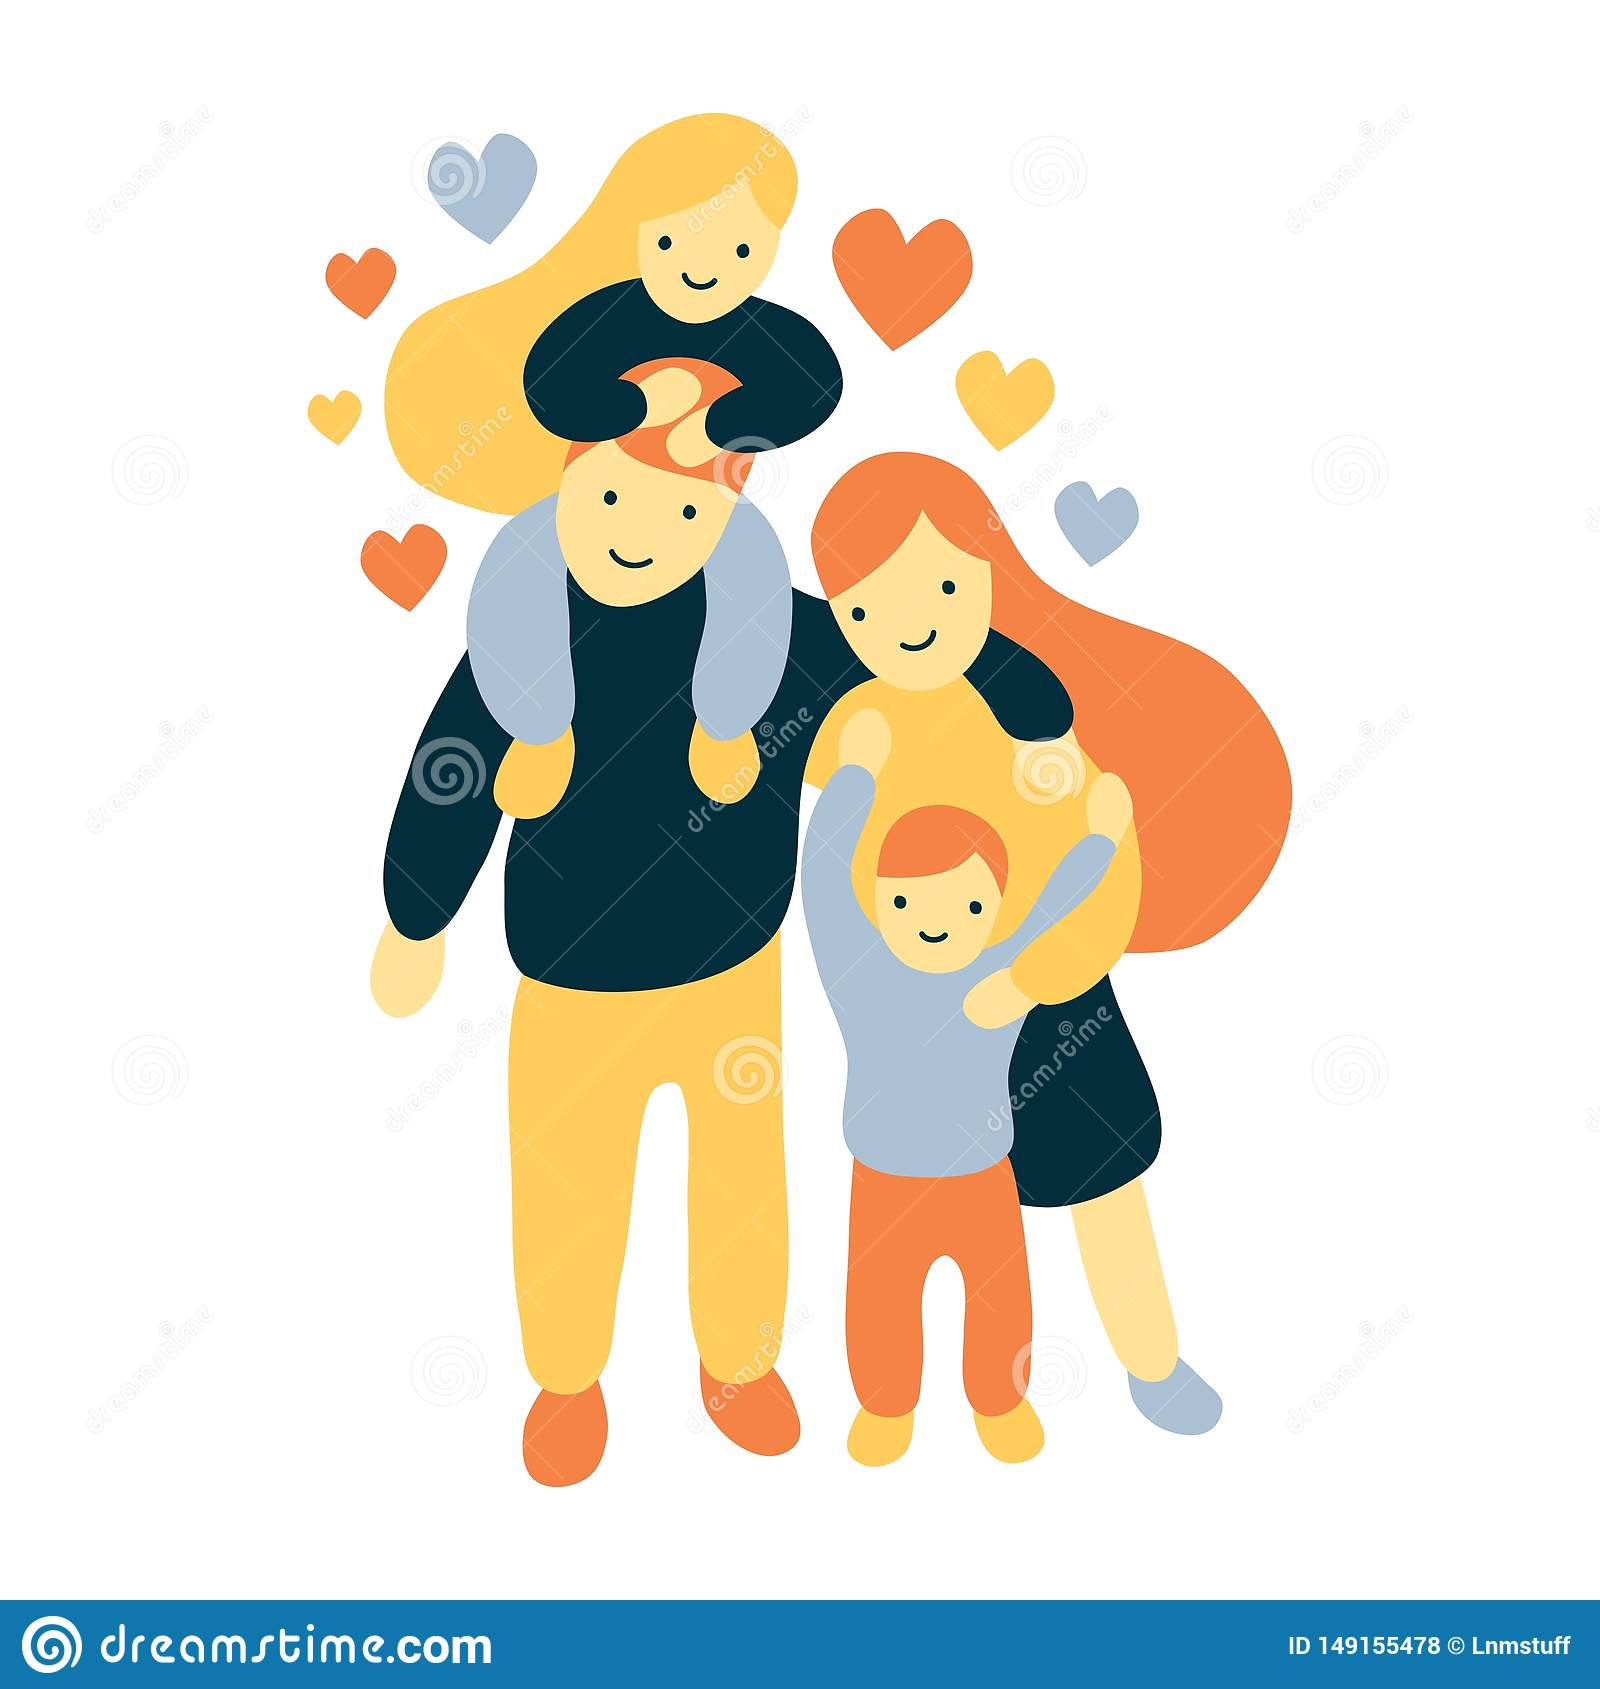 Vector flat and bold style illustration of a four members joyful and happy family